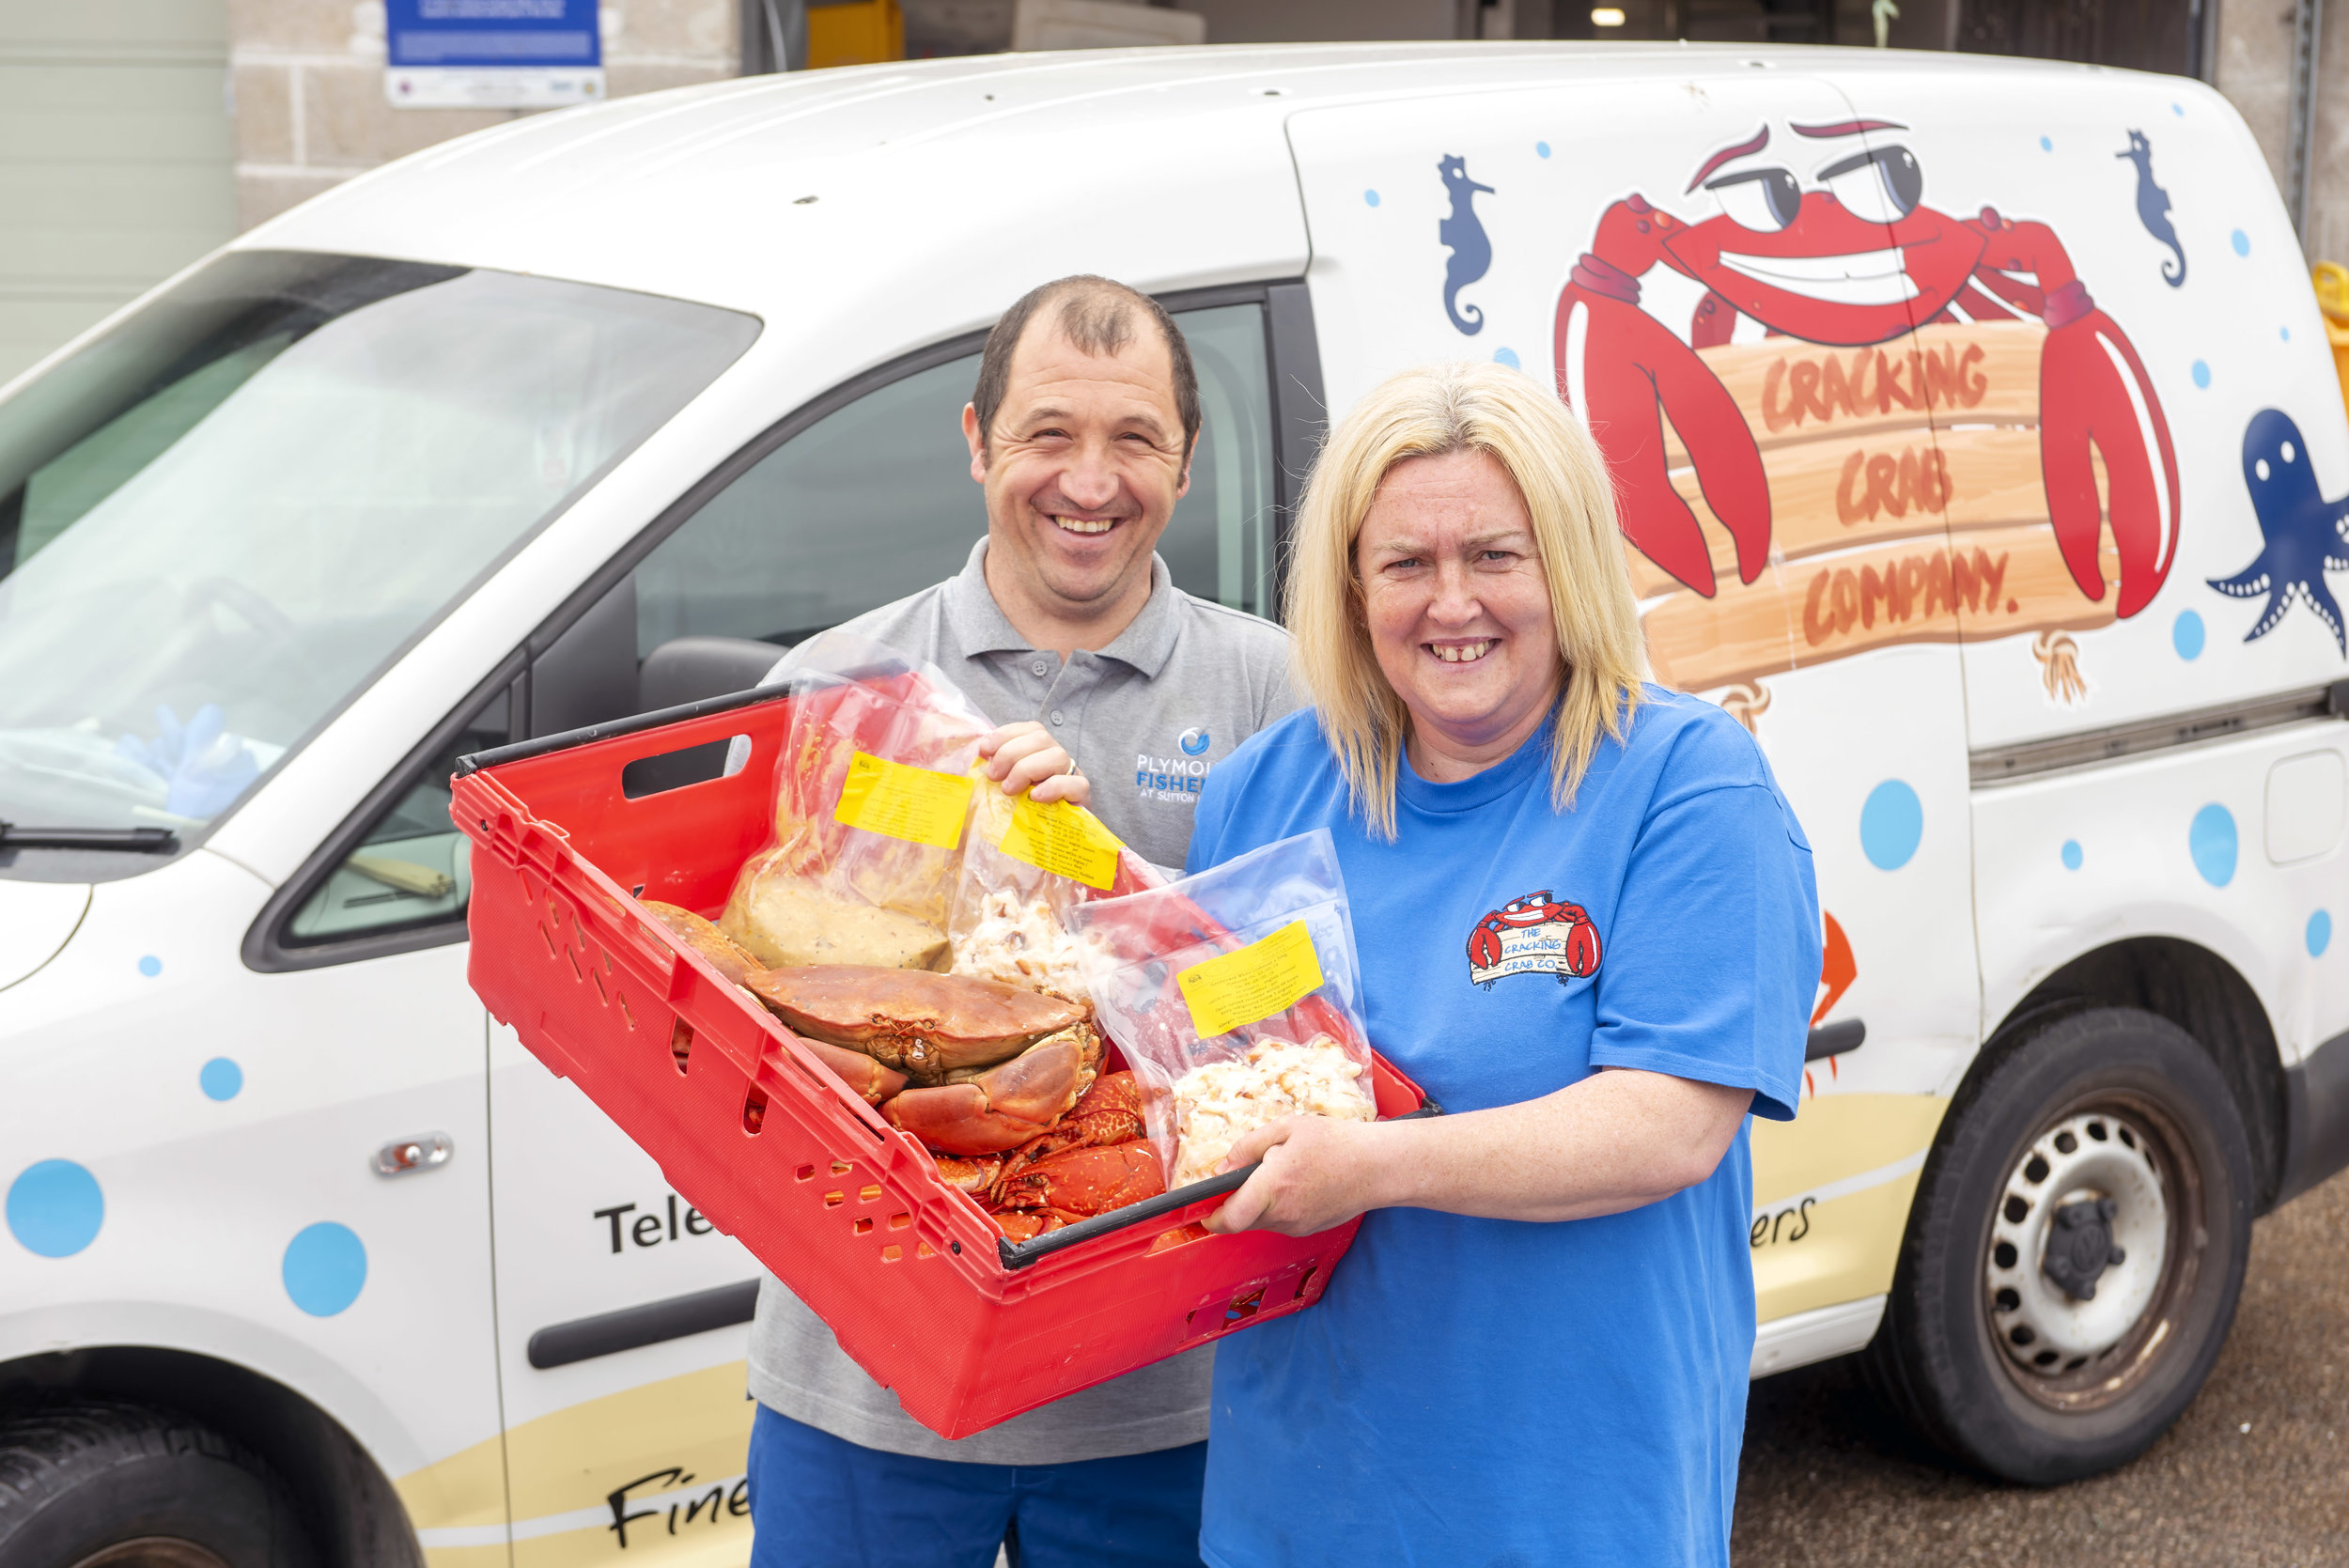 Nick Eggar, Manager of Plymouth Fisheries, and Claire Tapper outside the Cracking Crab Company unit at Plymouth Fisheries.